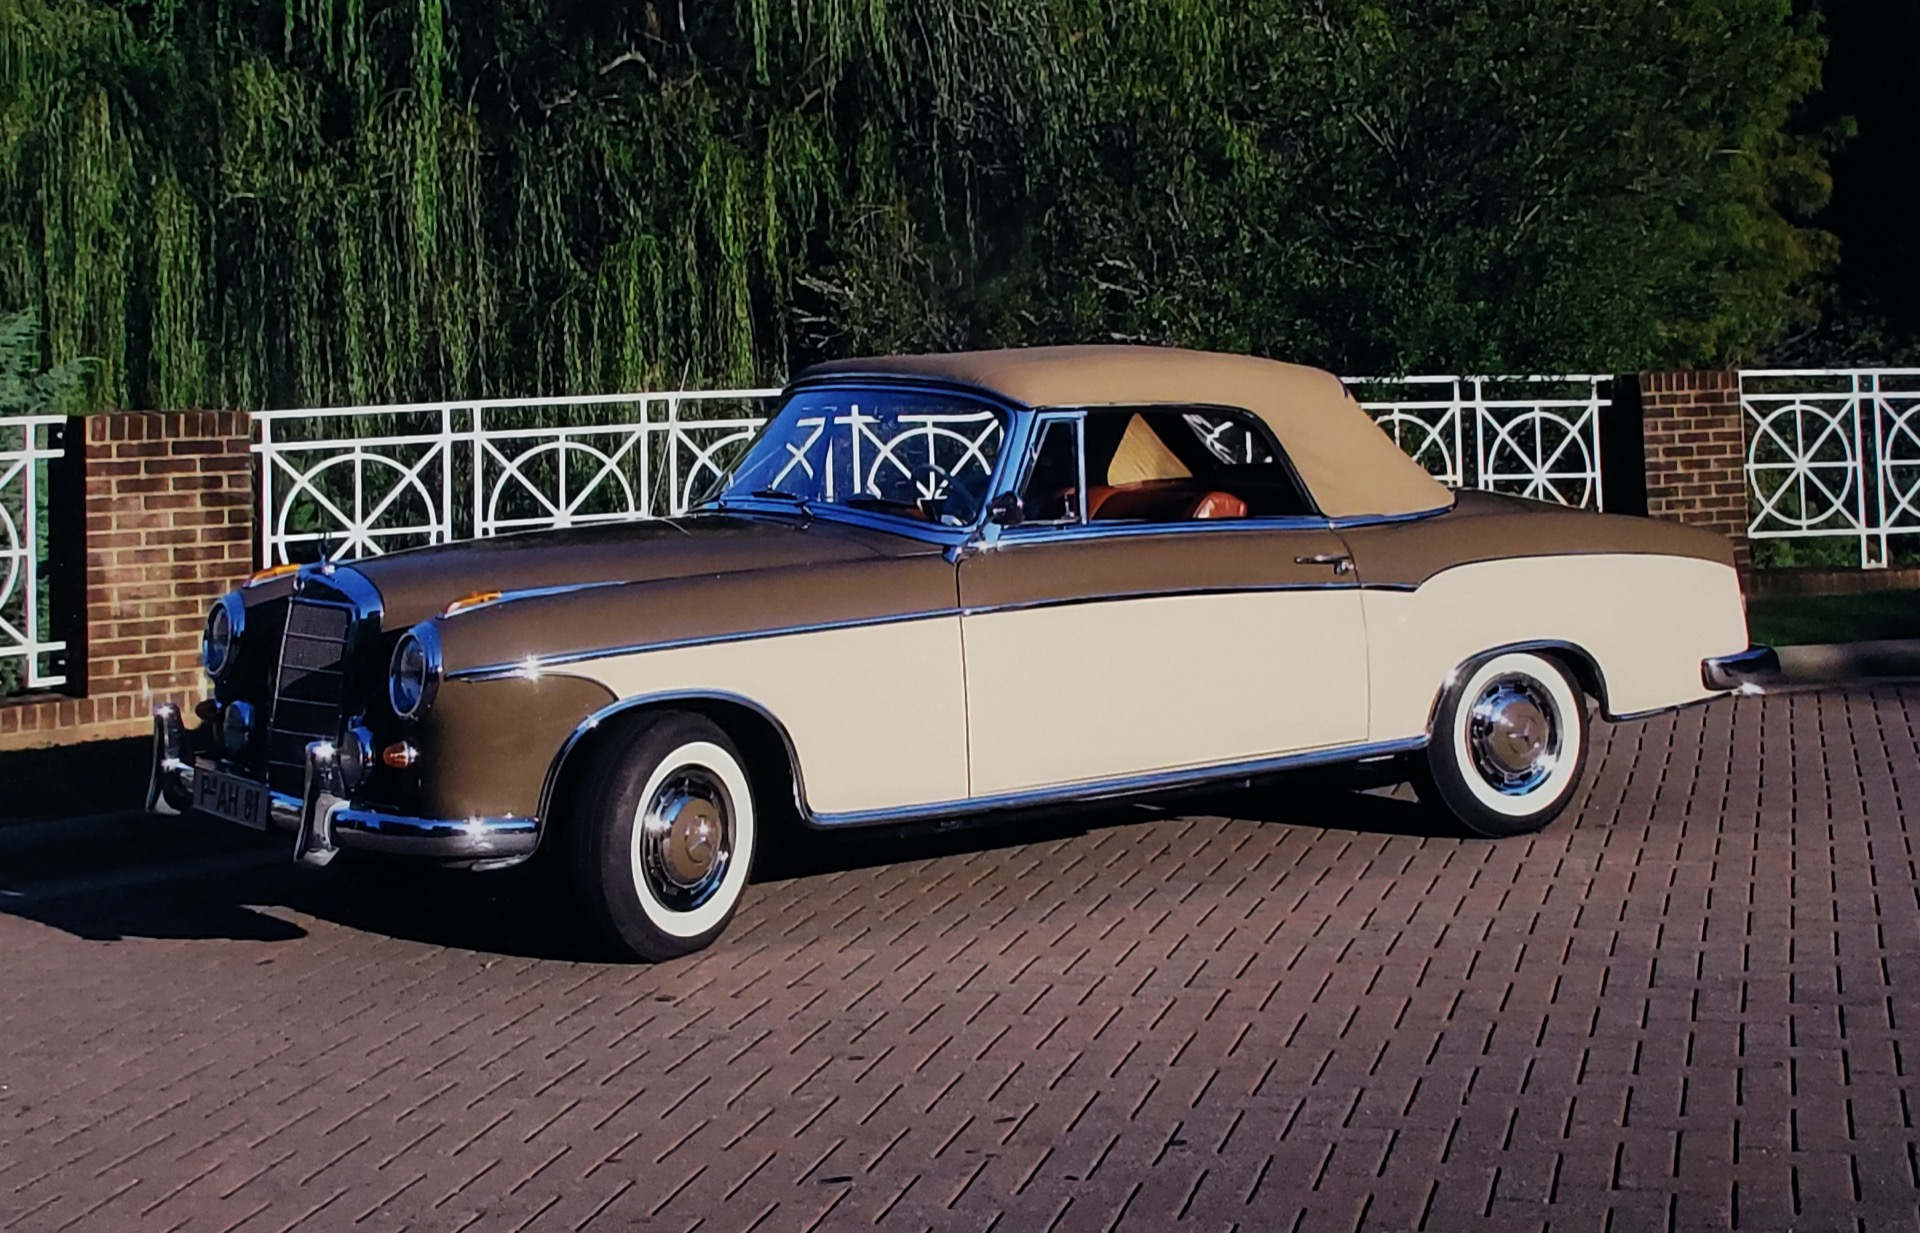 Used 1957 Mercedes-Benz 220 S Cabriolet - Full Restoration for sale Sold at Formula Imports in Charlotte NC 28227 70